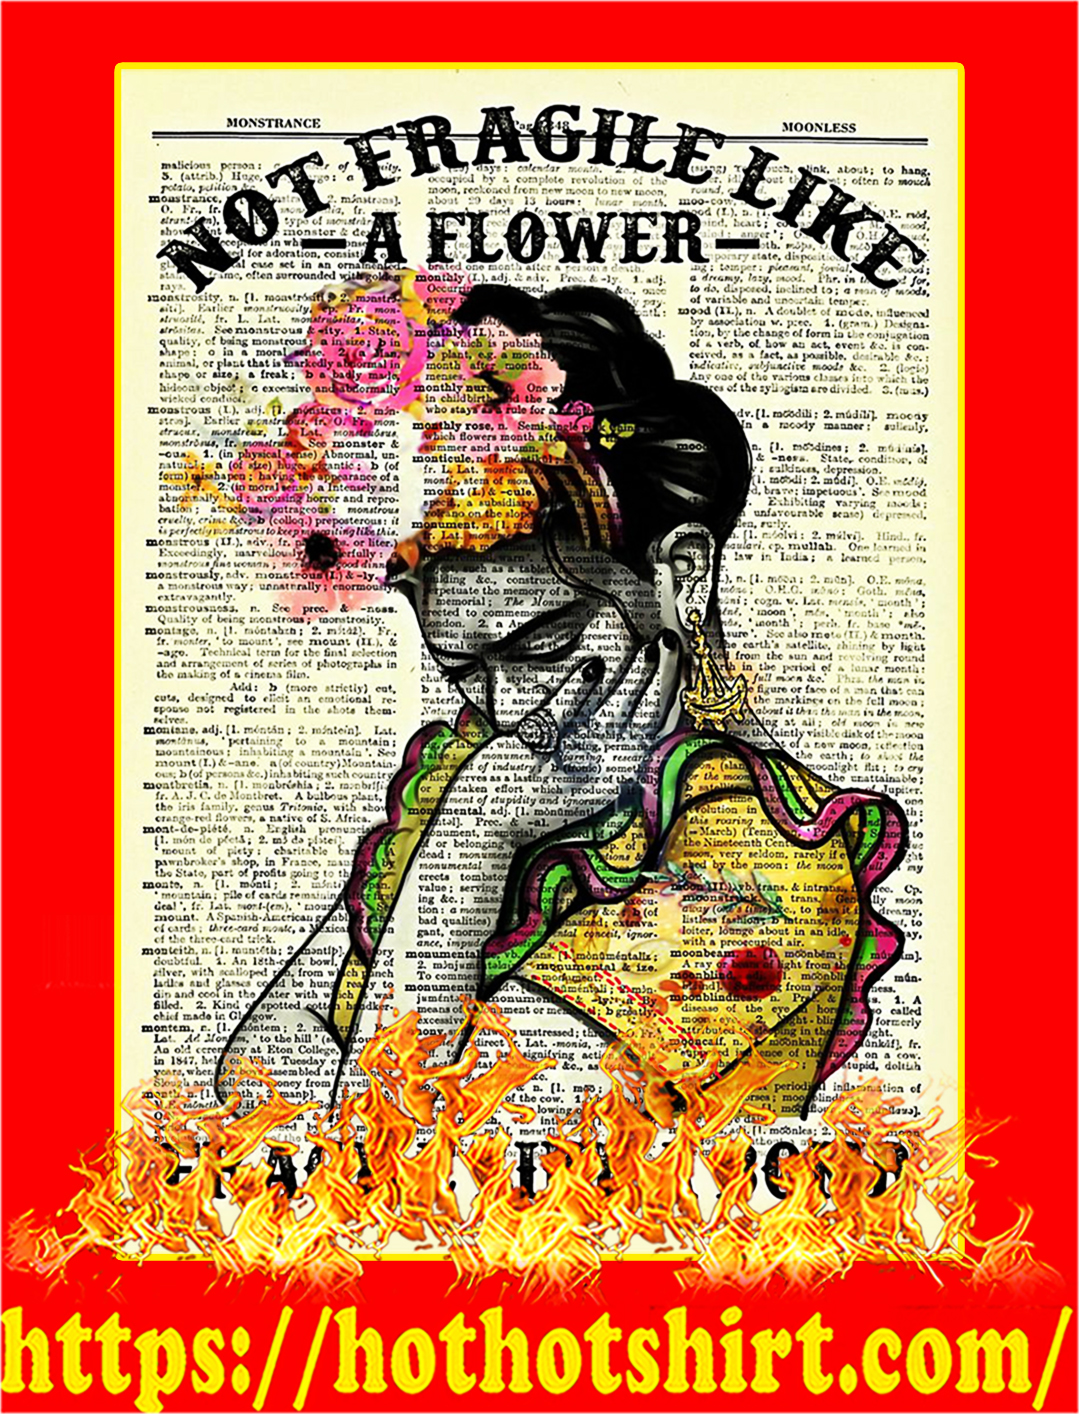 Not fragile like a flower fragile like a bomb poster - A1